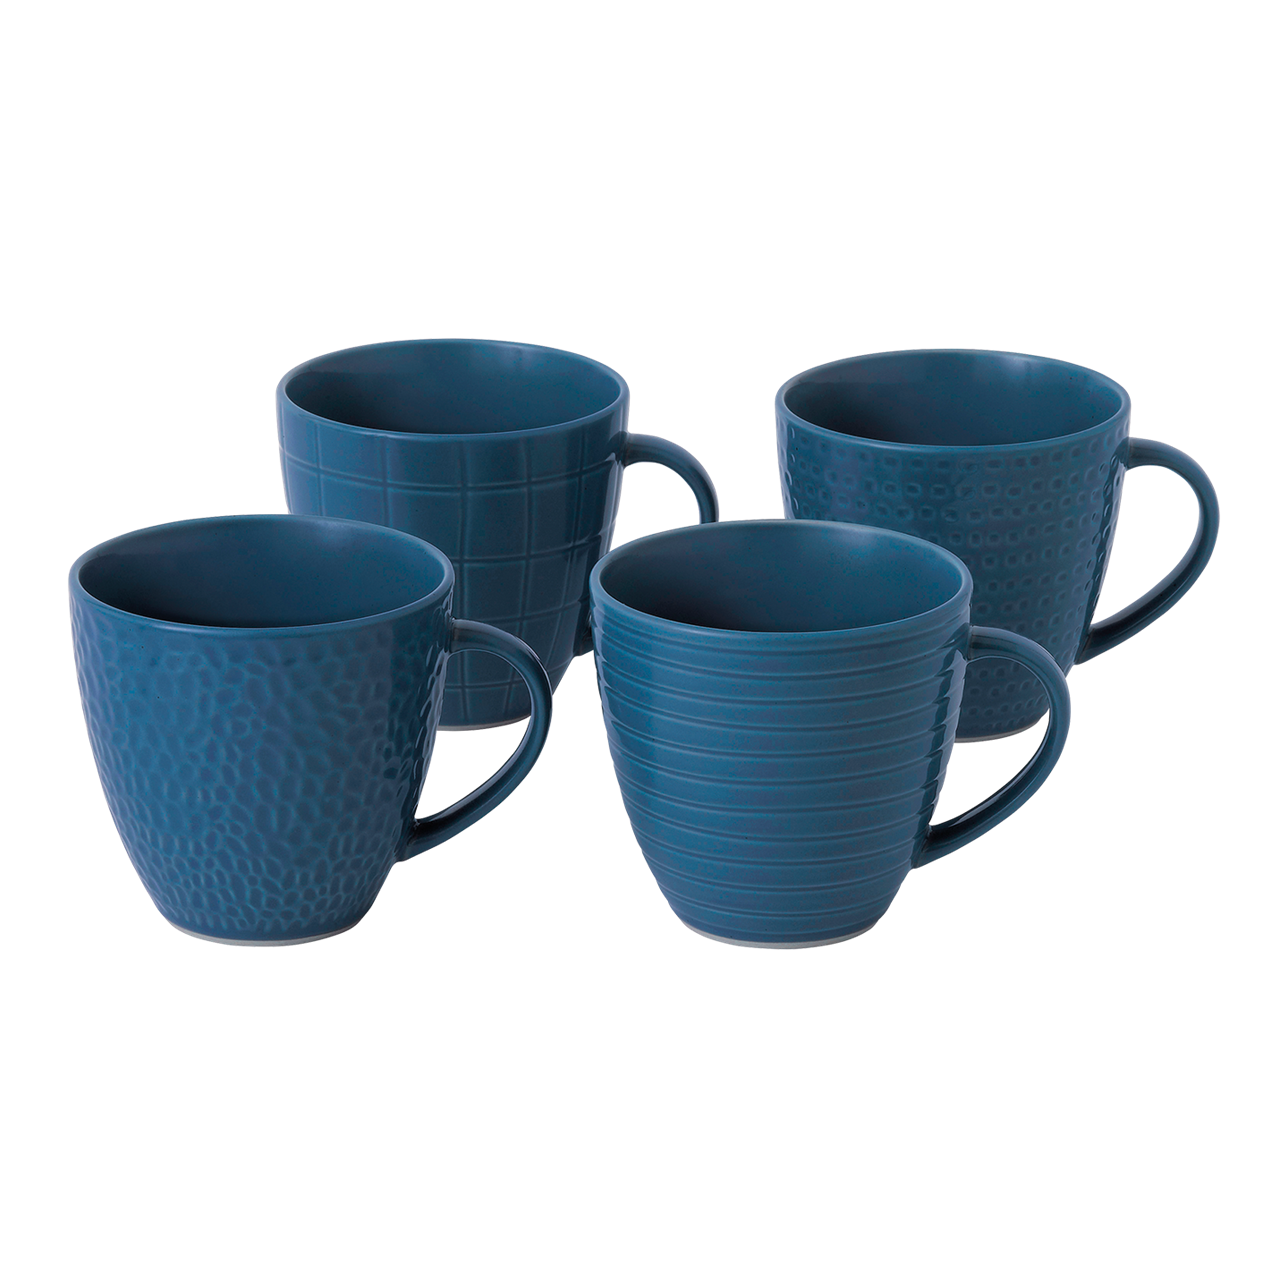 Maze Grill Mixed Pattern Blue Mug (Set of 4)